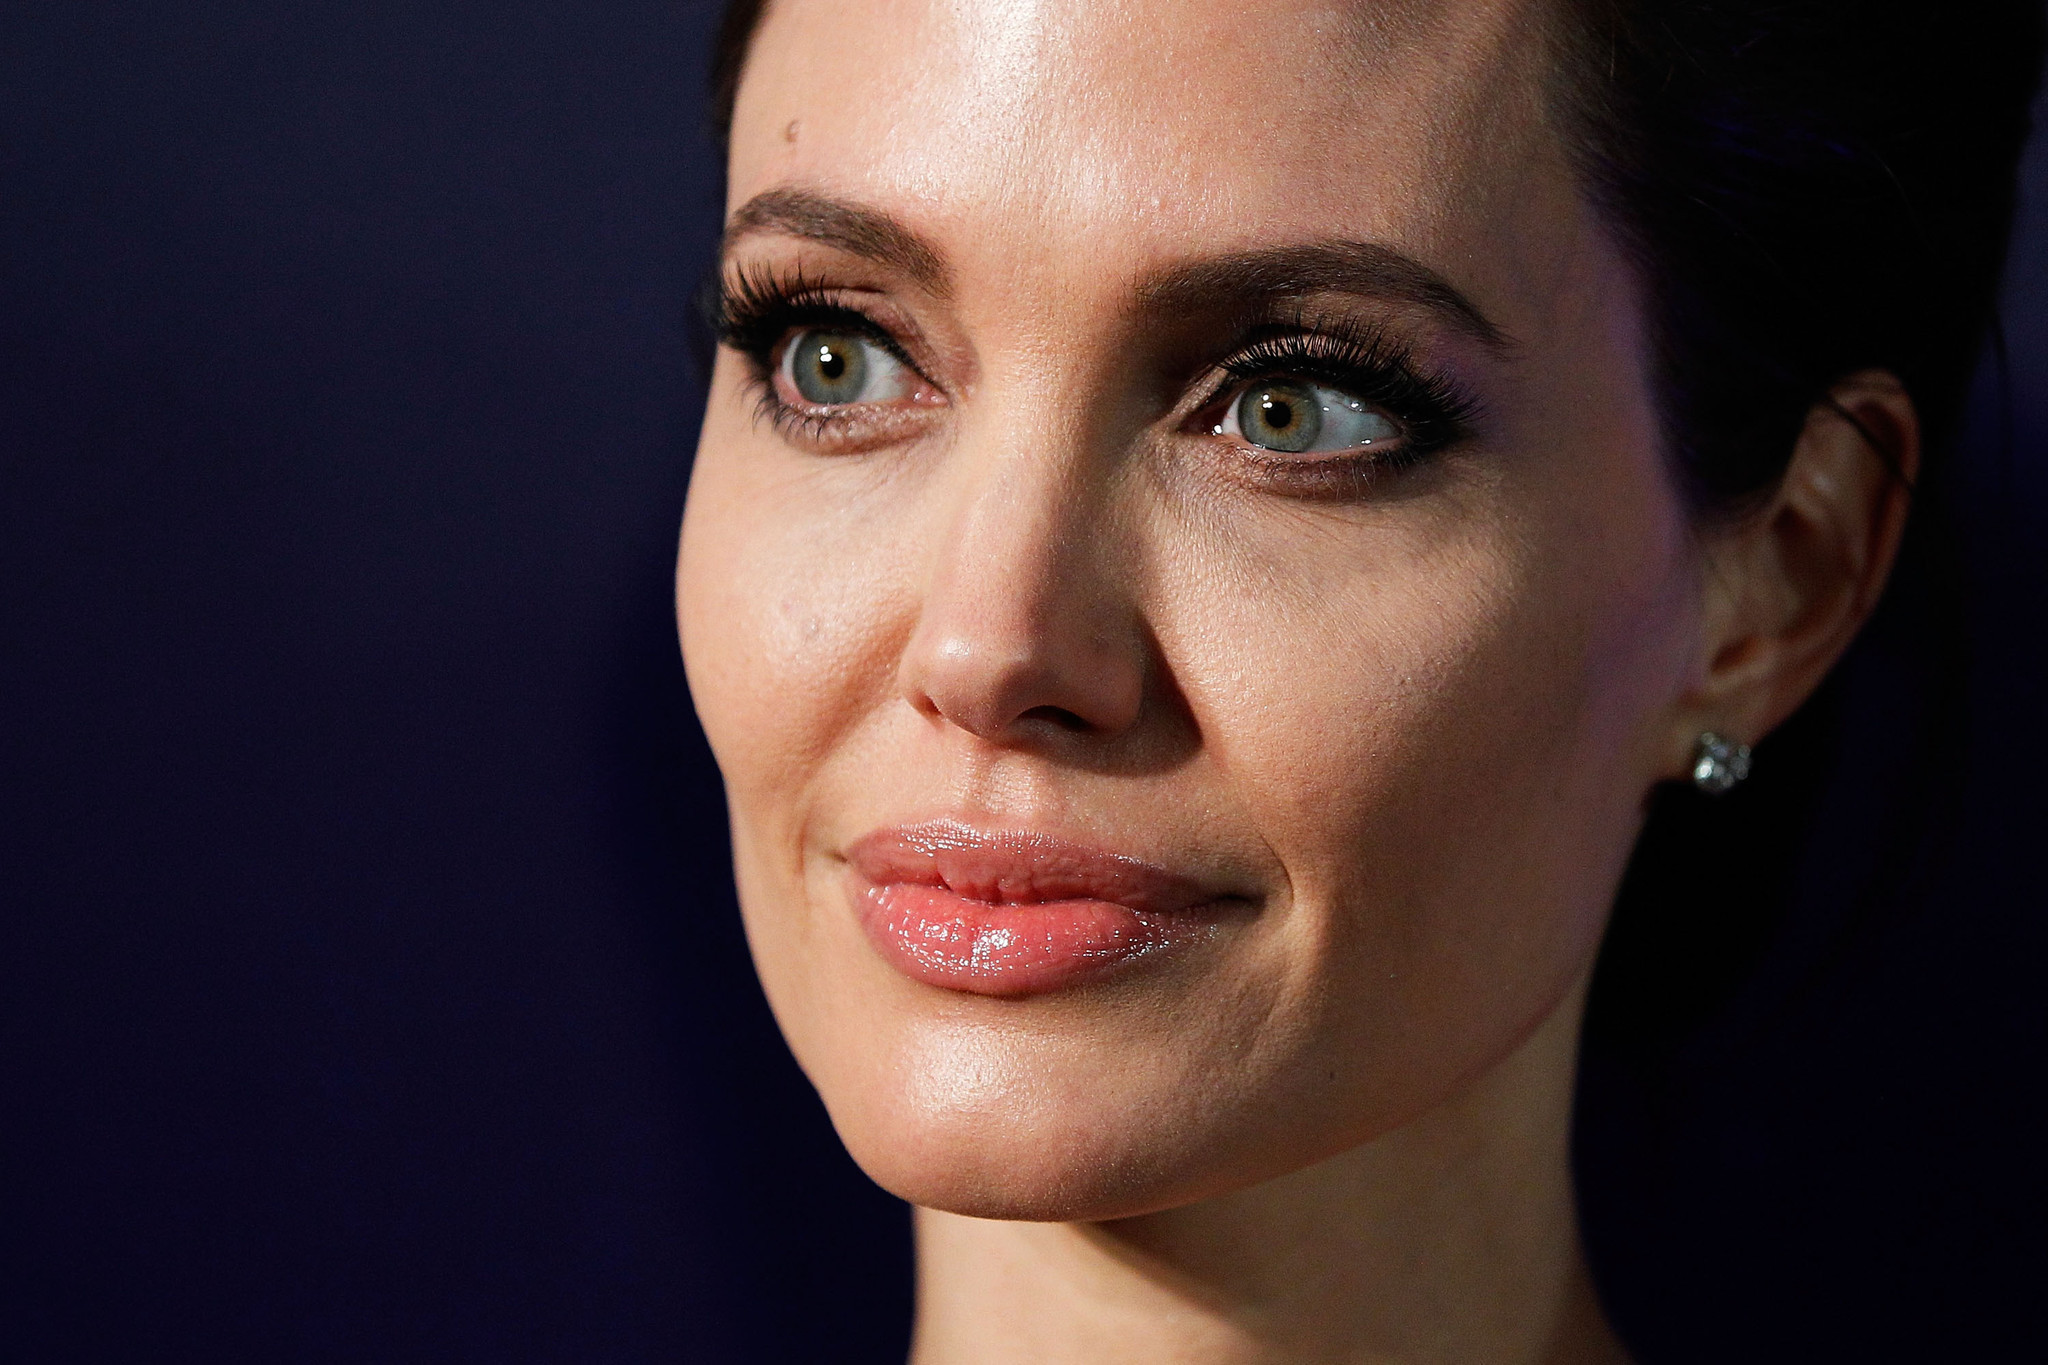 SYDNEY, AUSTRALIA - NOVEMBER 17:  Angelina Jolie arrives at the world premiere of Unbroken at the State Theatre on November 17, 2014 in Sydney, Australia.  (Photo by Brendon Thorne/Getty Images) ** OUTS - ELSENT, FPG - OUTS * NM, PH, VA if sourced by CT, LA or MoD **